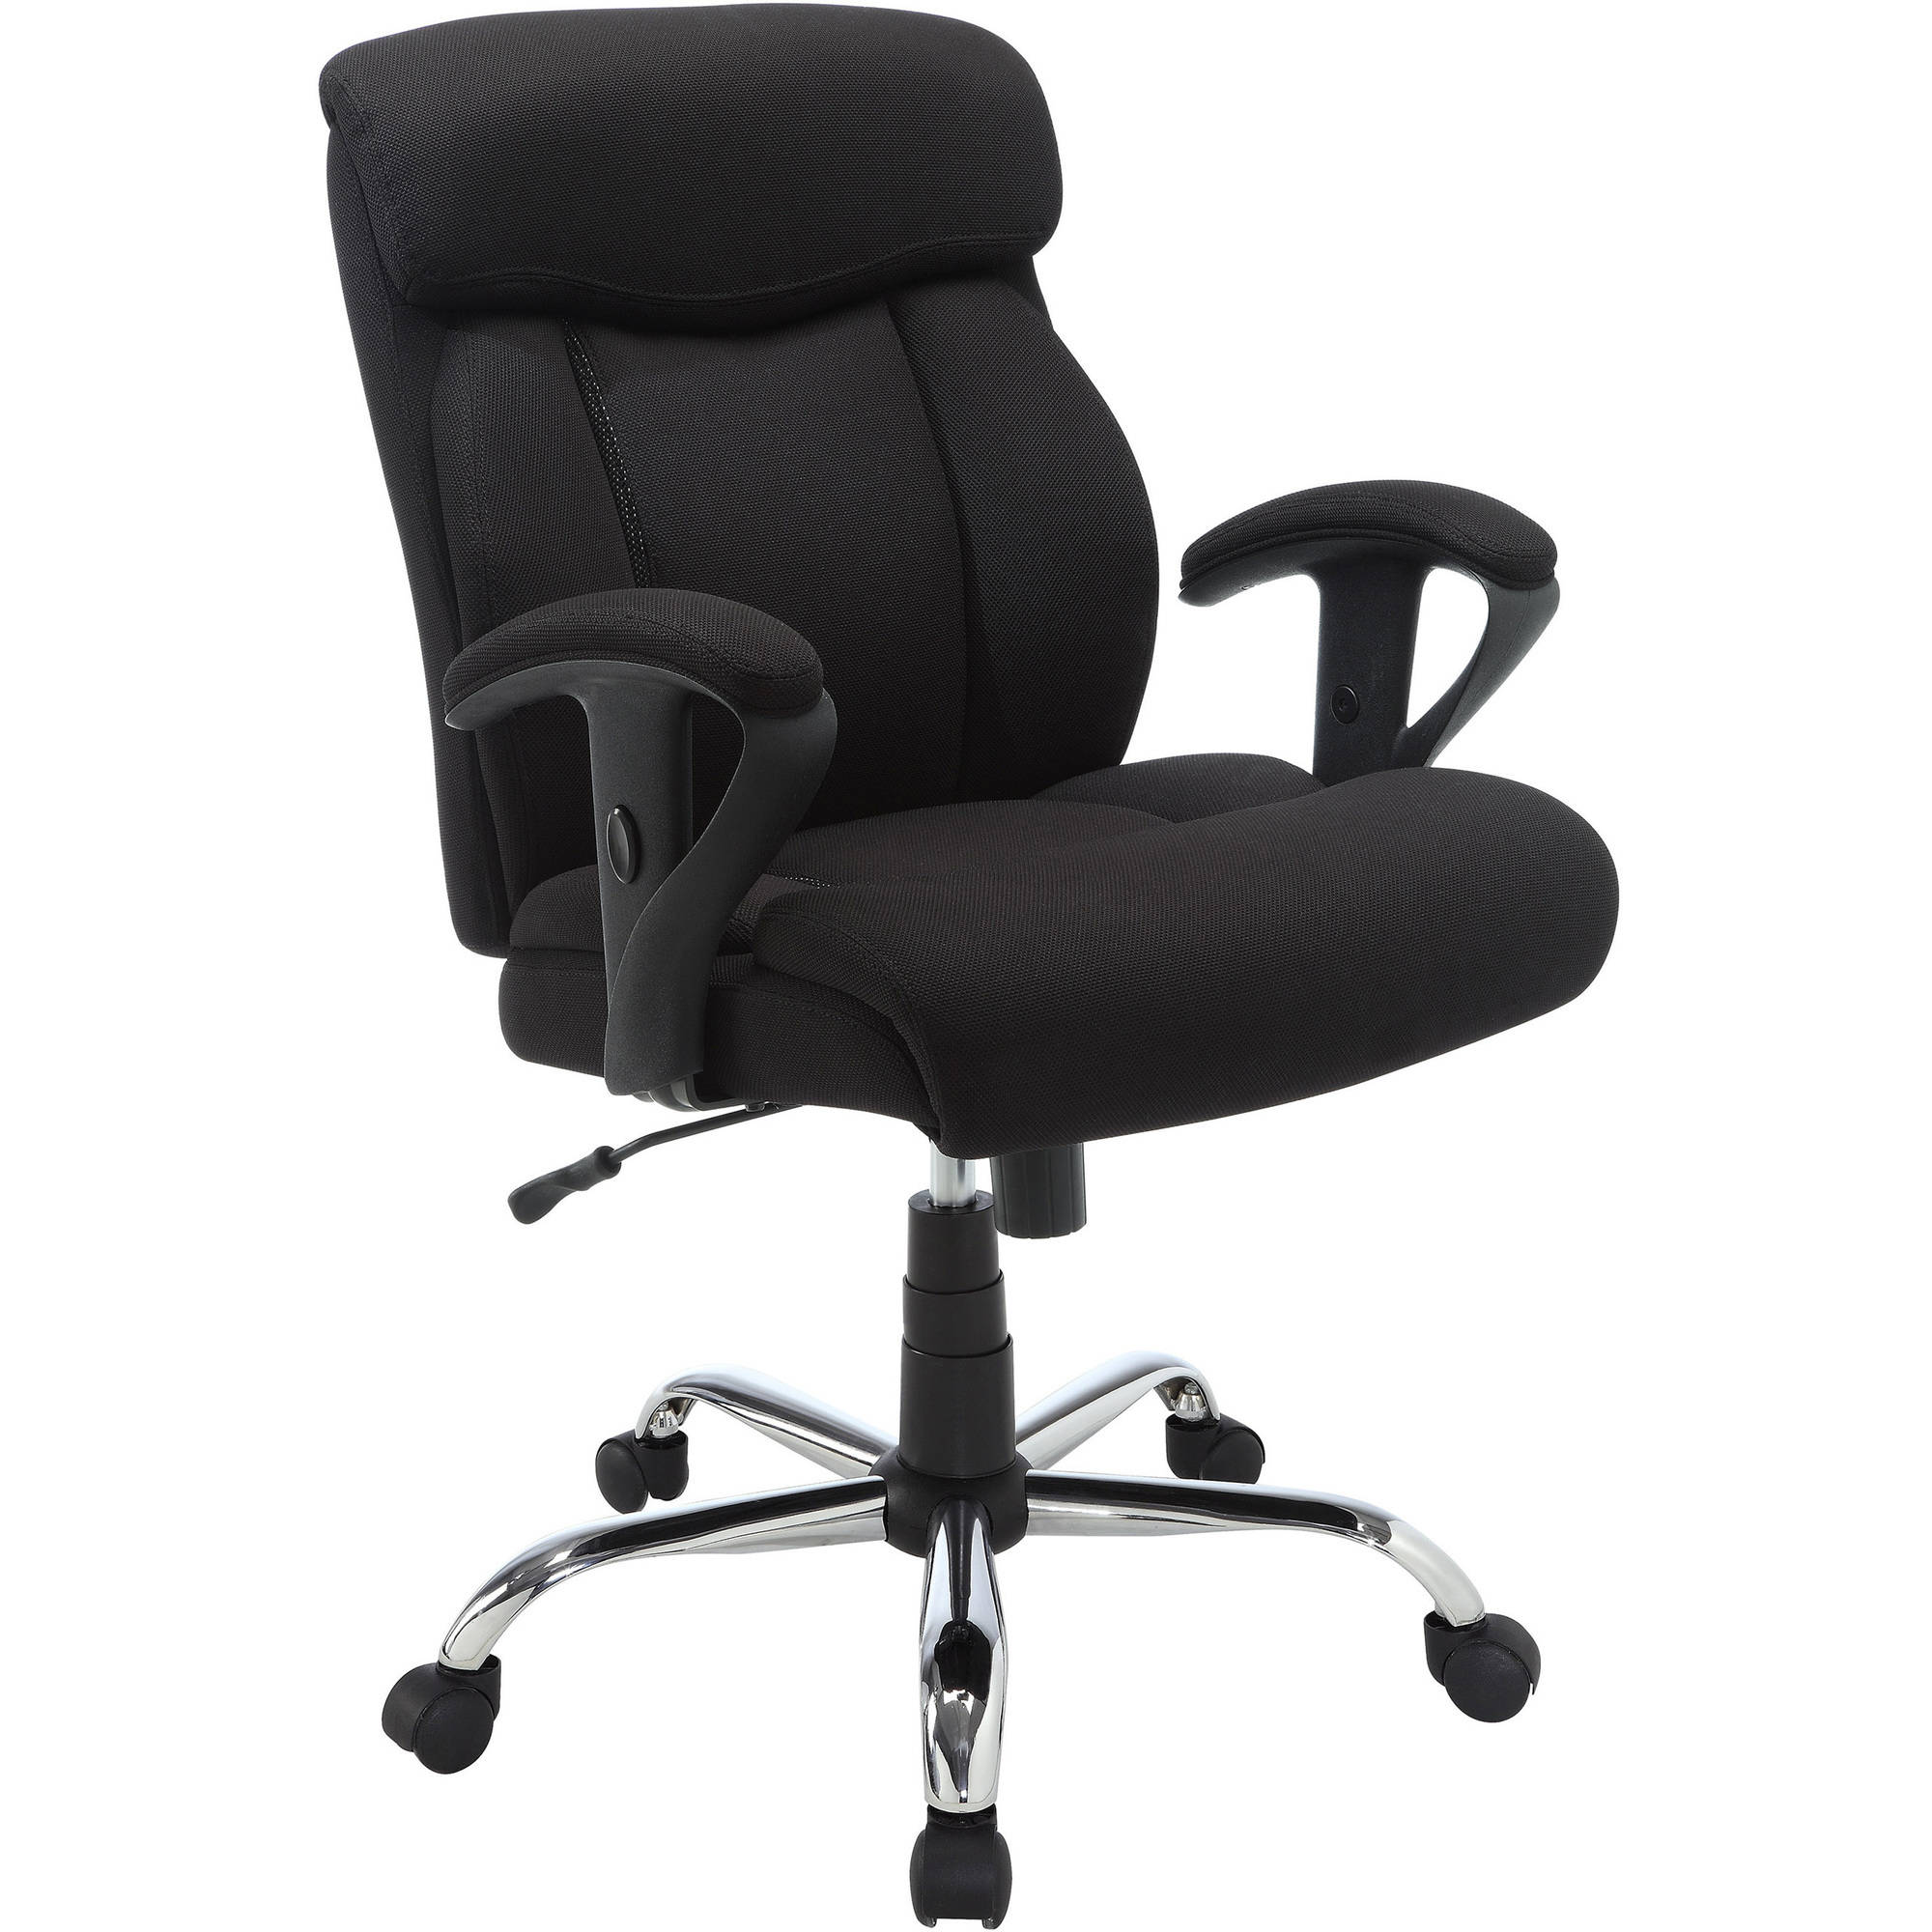 serta office chair 10 year warranty swivel ethan allen mesh fabric big and tall manager multiple colors walmart com